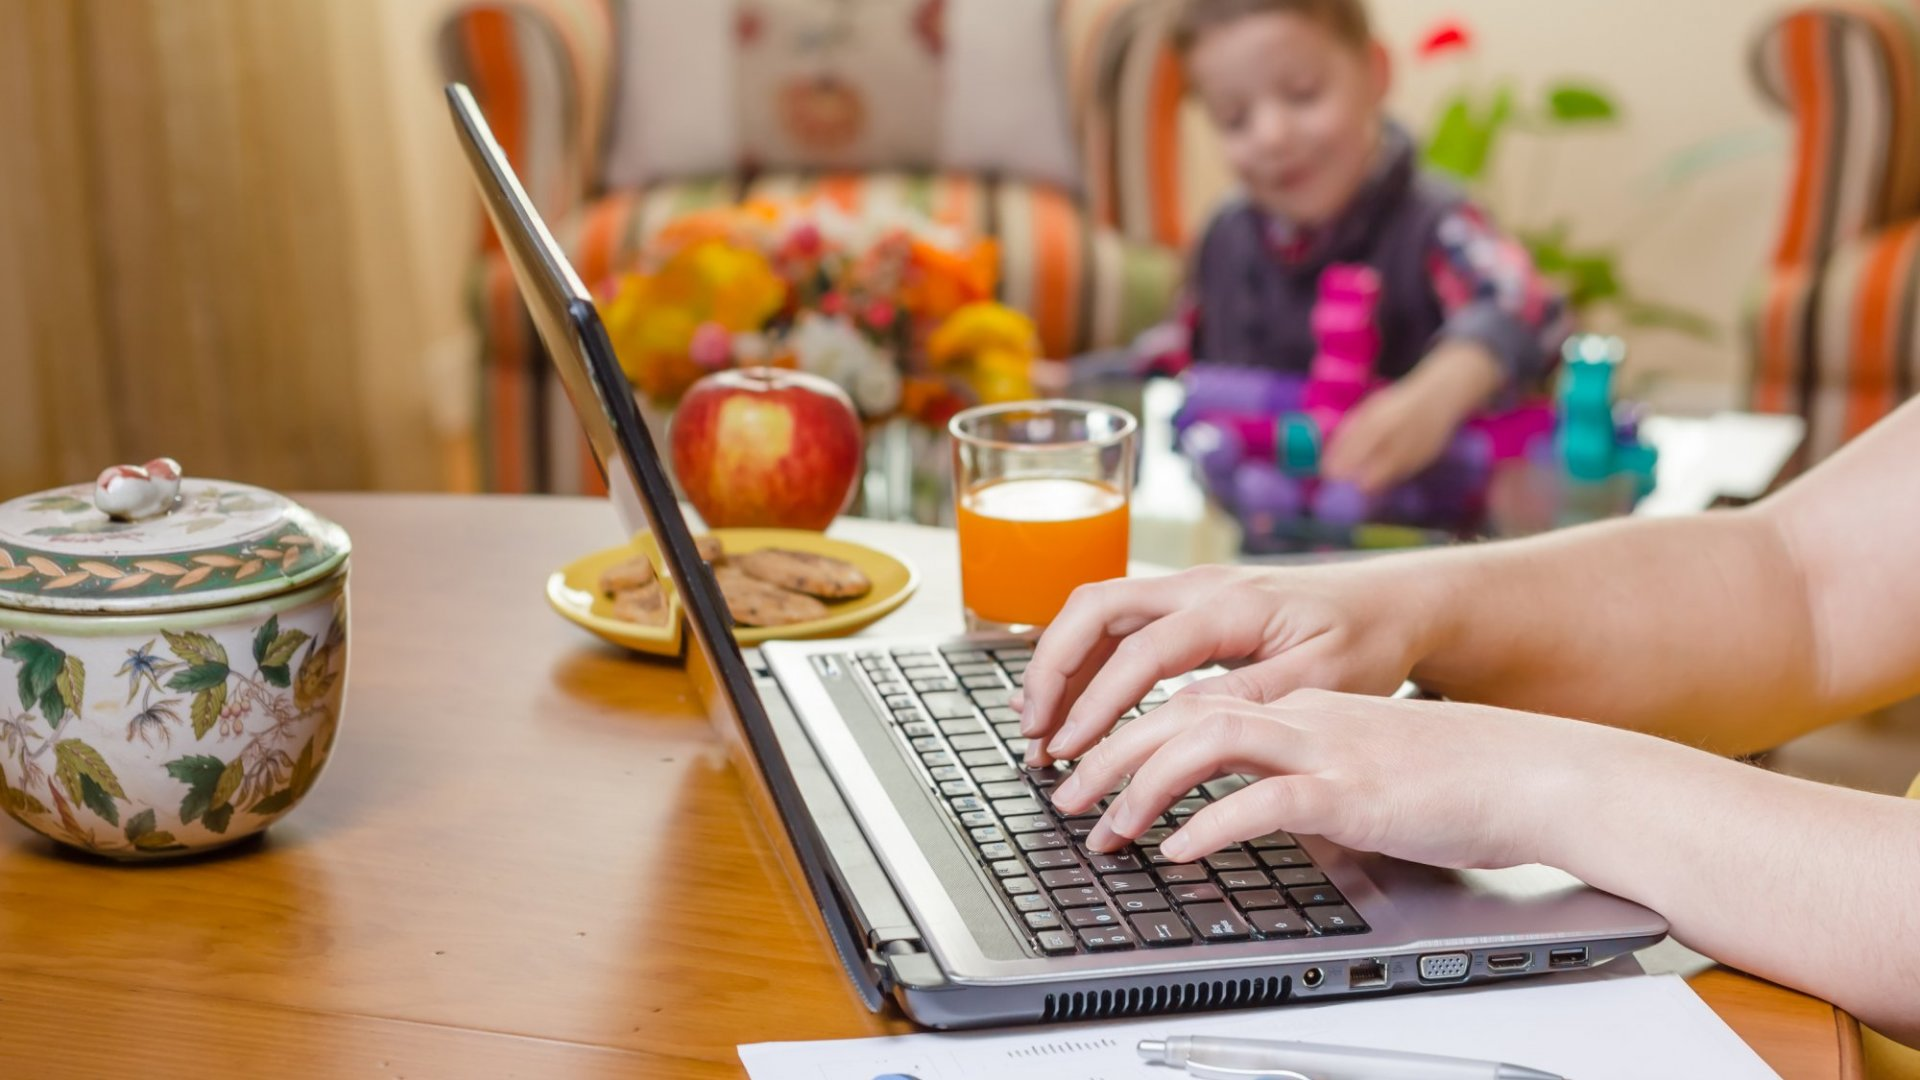 Work From Home? Here Are 6 Things You Should Do Every Day